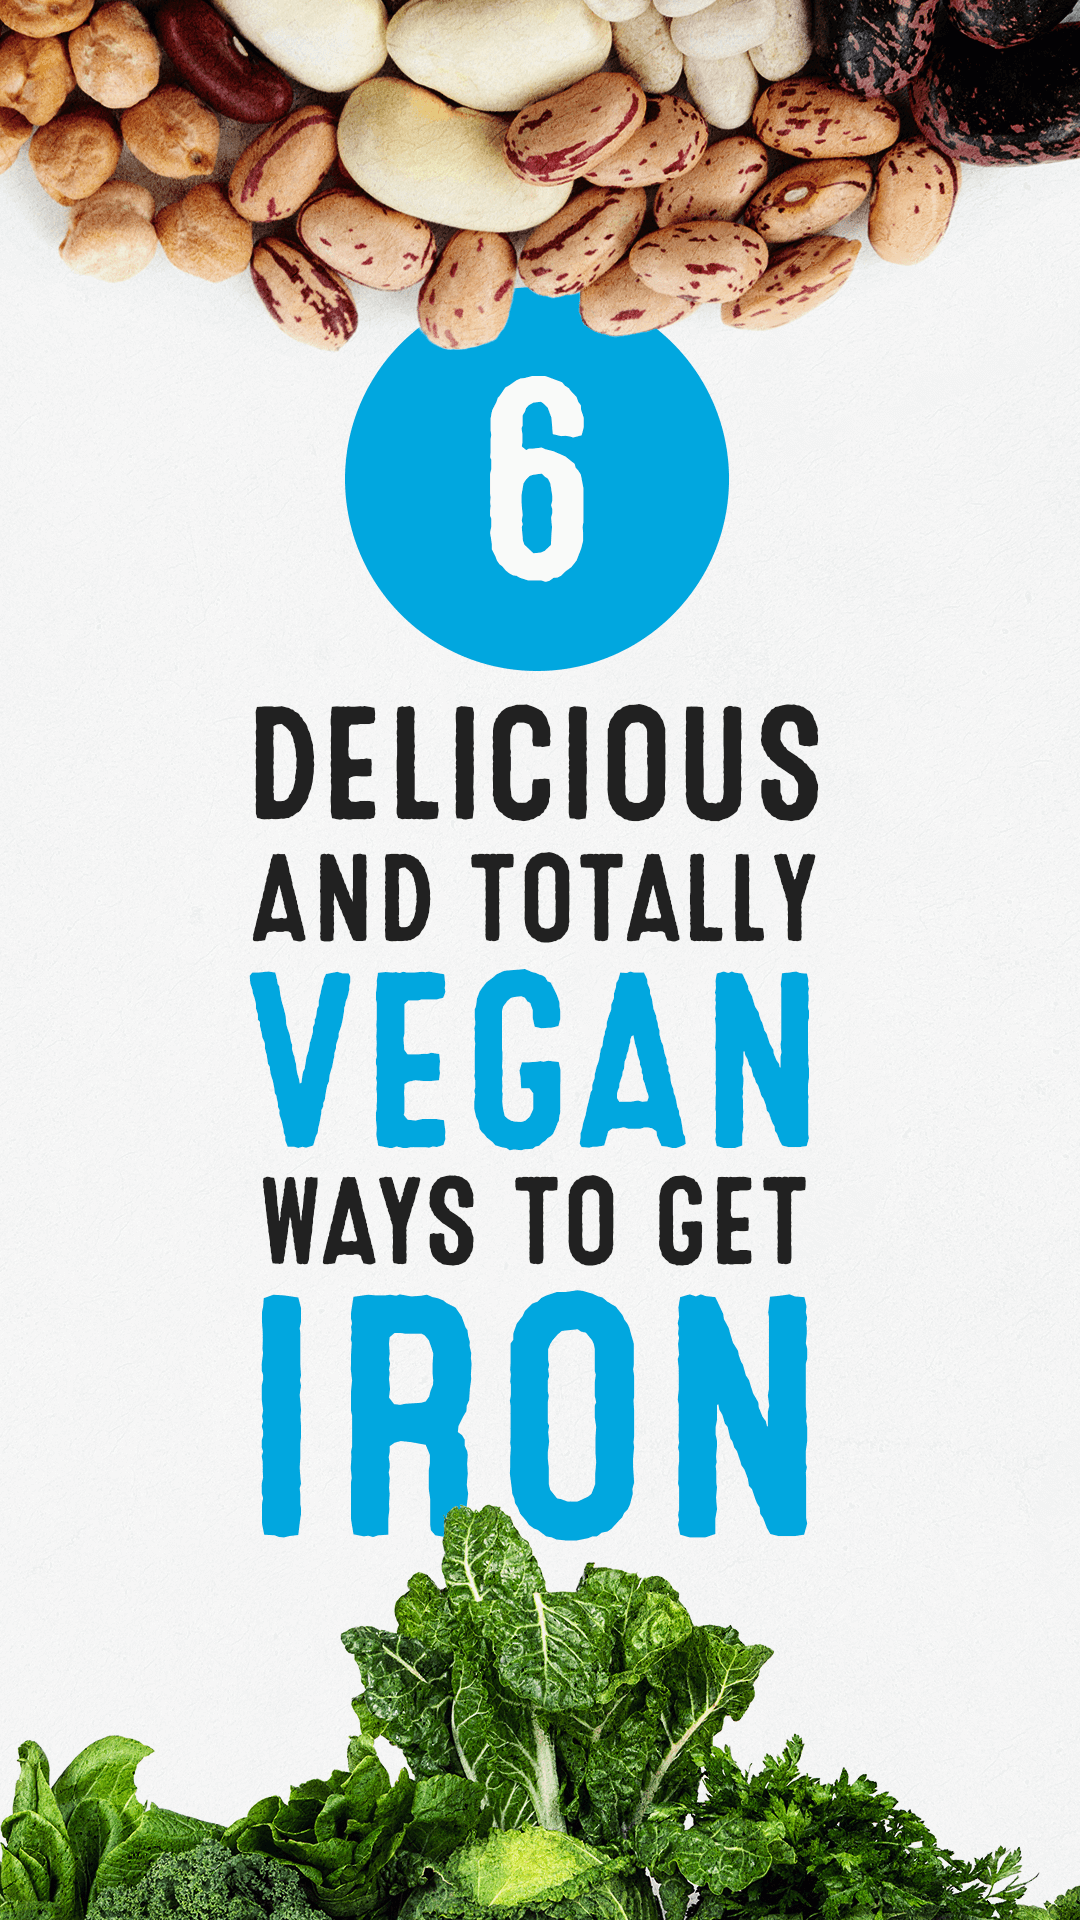 6 Delicious and Totally Vegan Ways to Get Iron